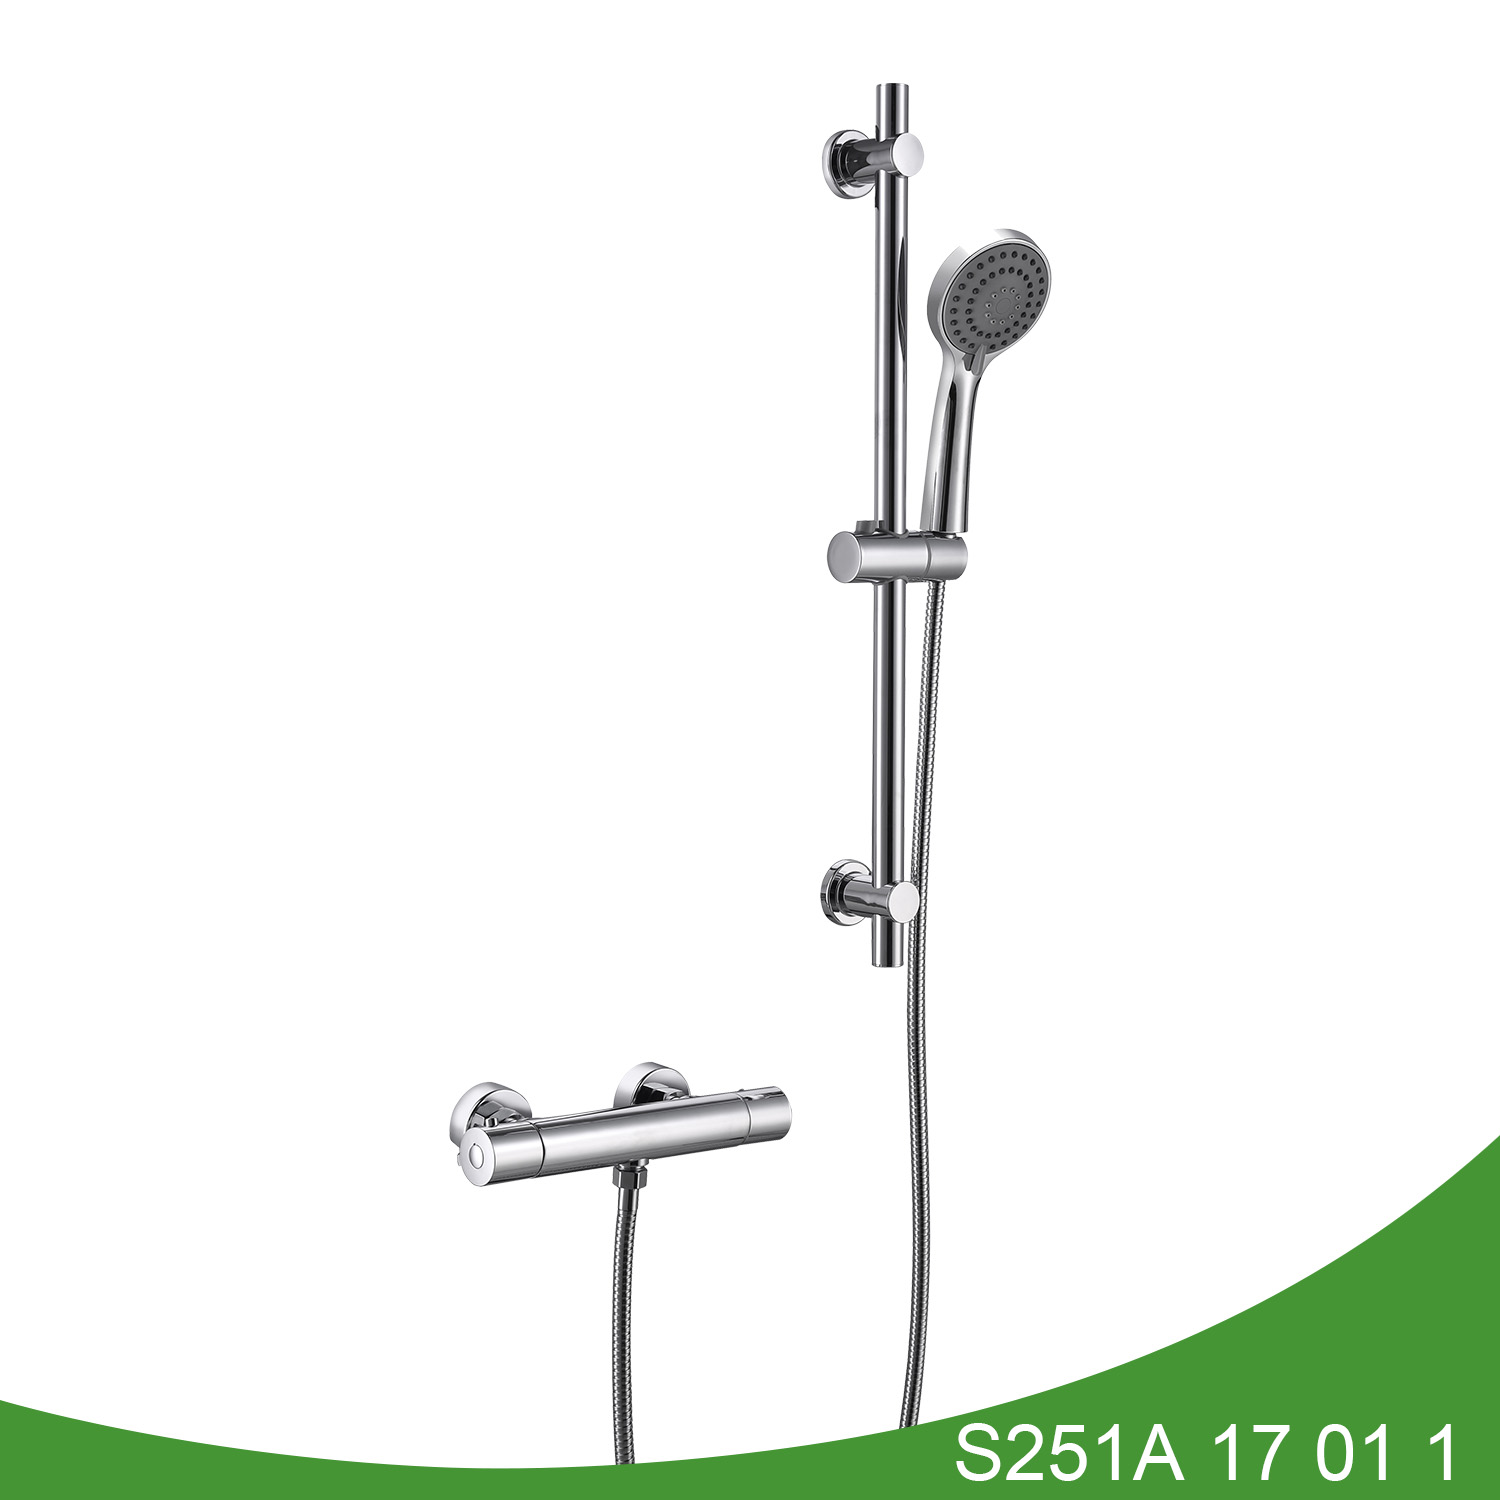 Thermostatic shower set S251A 17 01 1